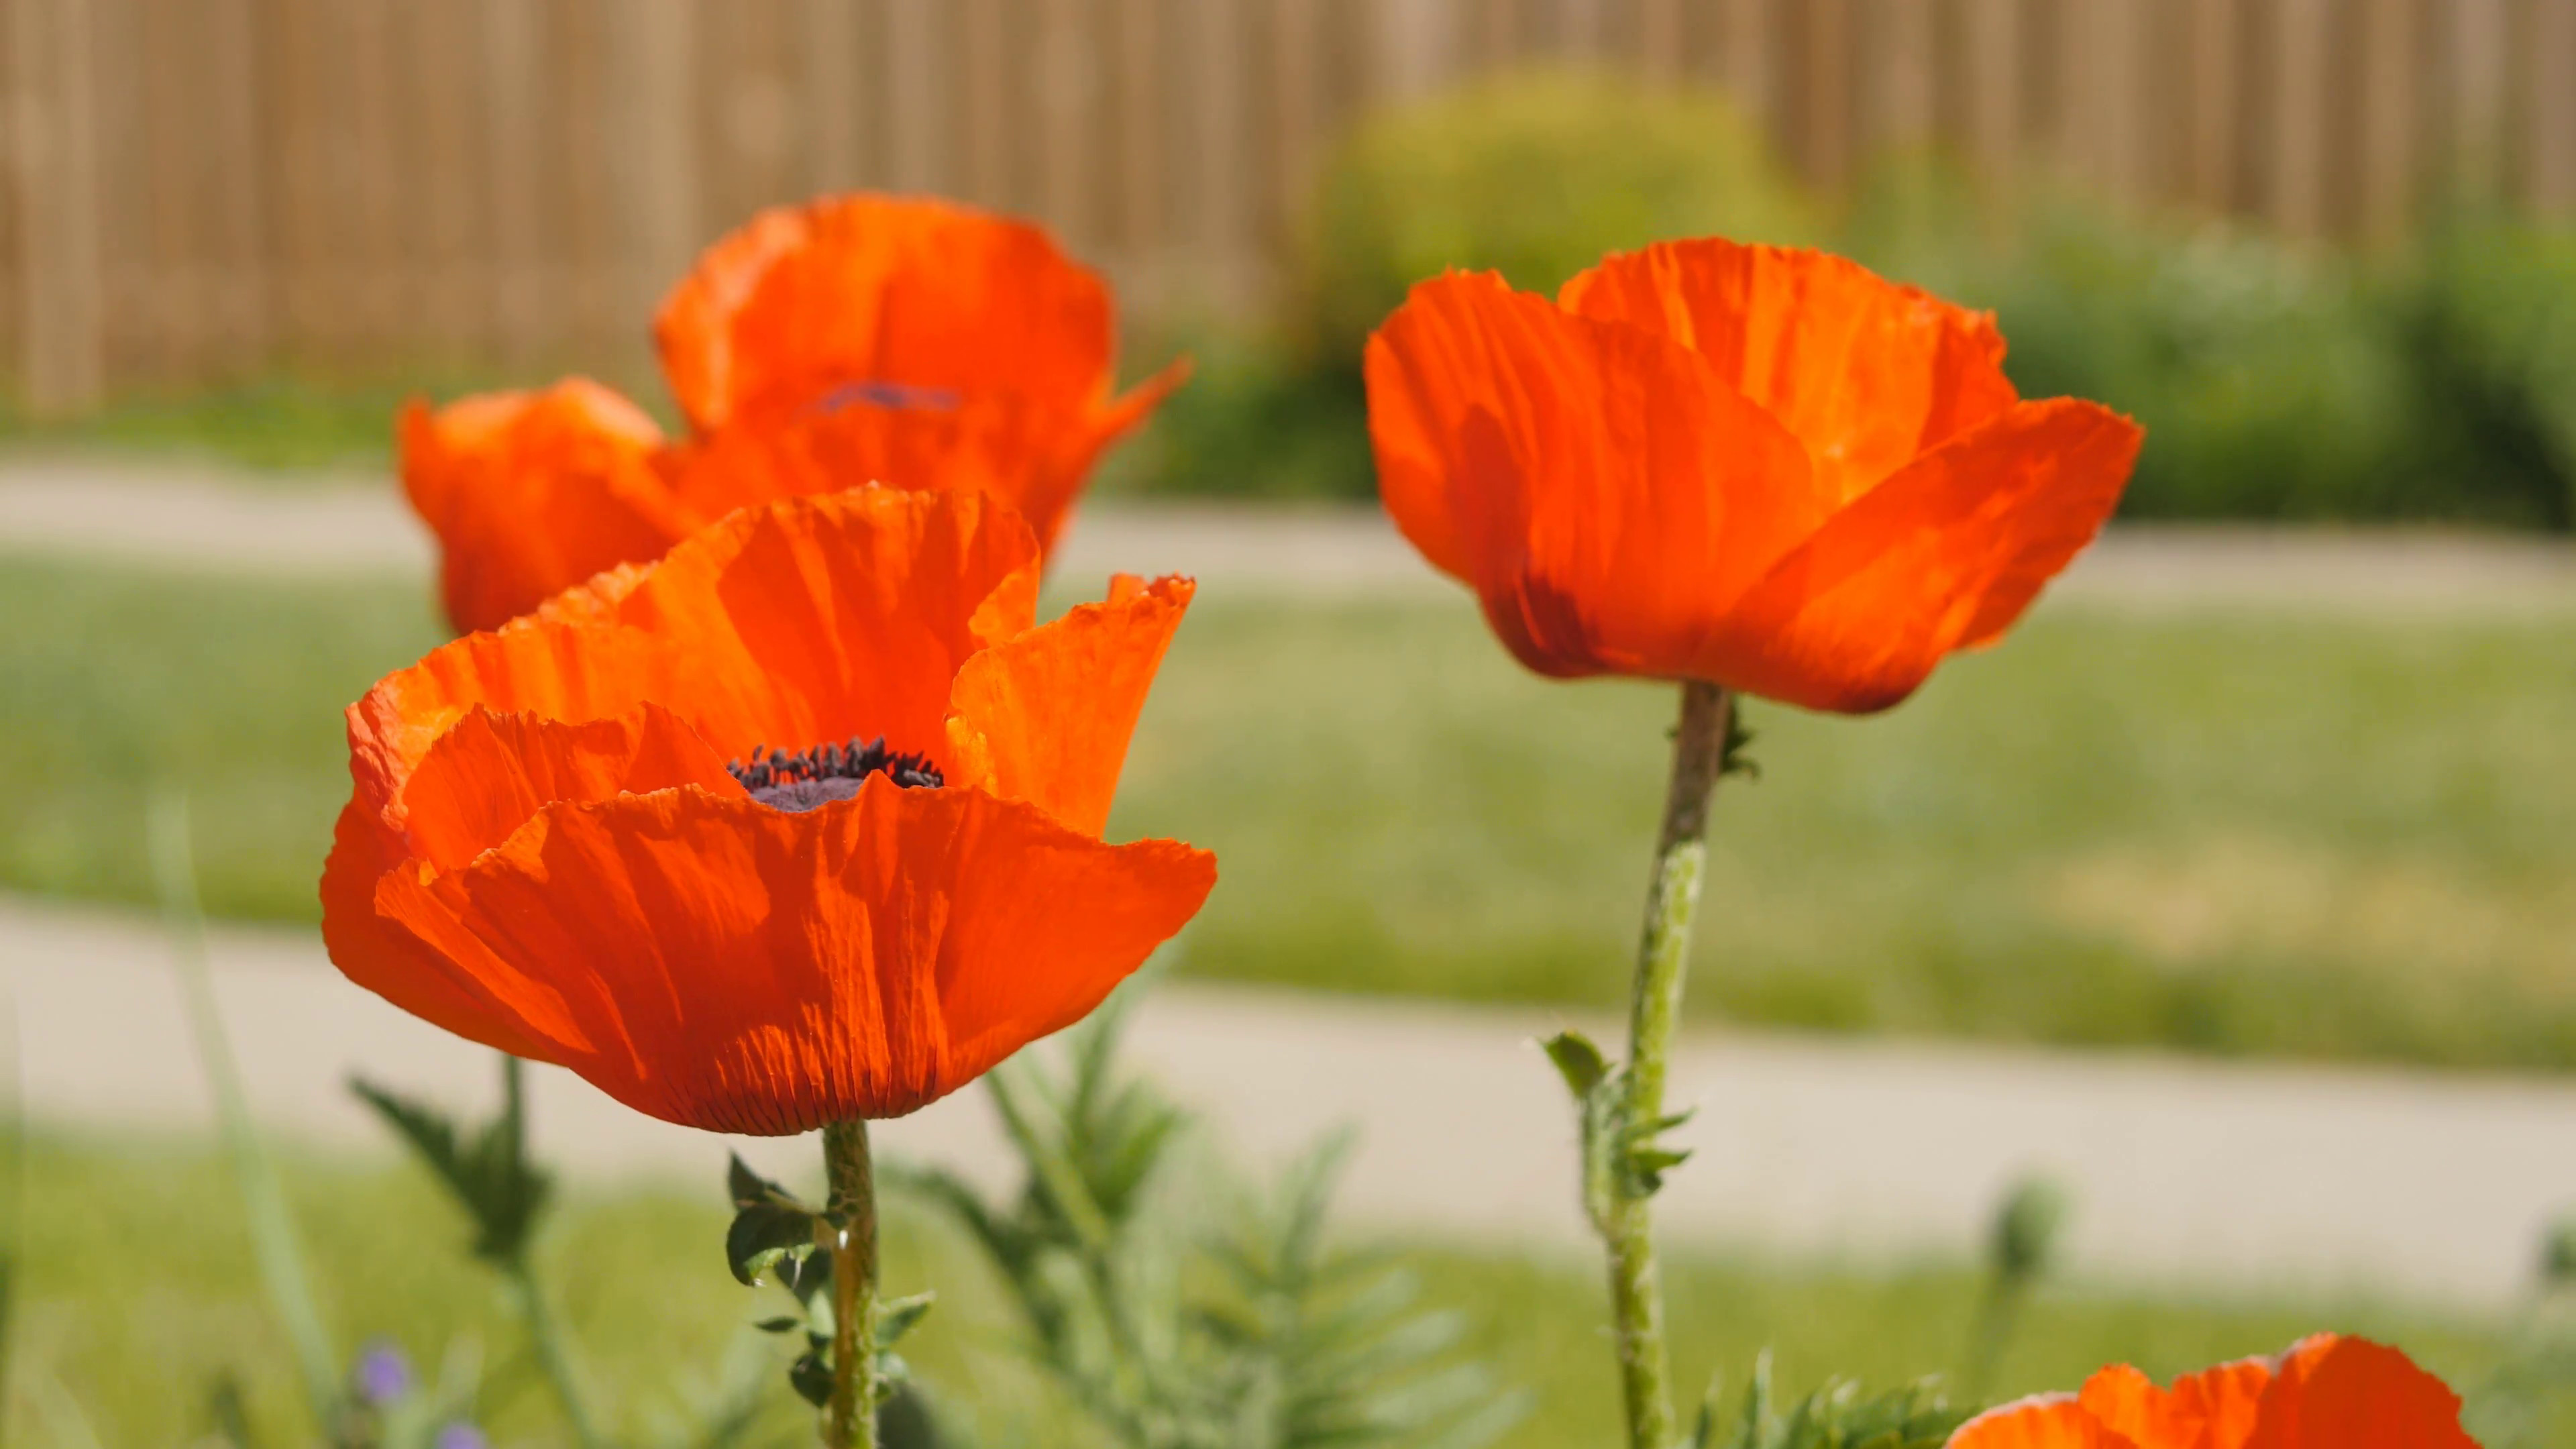 3840x2160 Poppy in sharp focus with defocused poppies in the background. East York,  Ontario, Canada. Stock Video Footage - Storyblocks Video